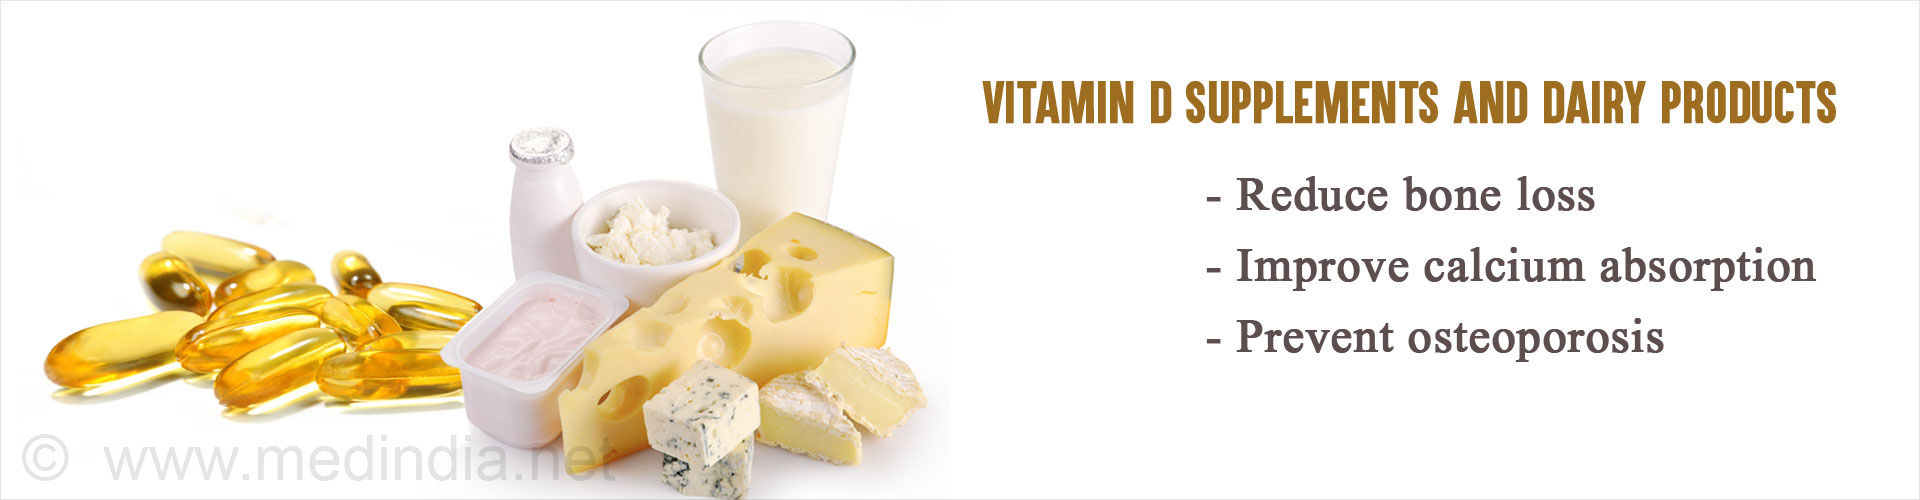 Dairy Products and Vitamin D Supplements Protect Against Osteoporosis in Older Adults